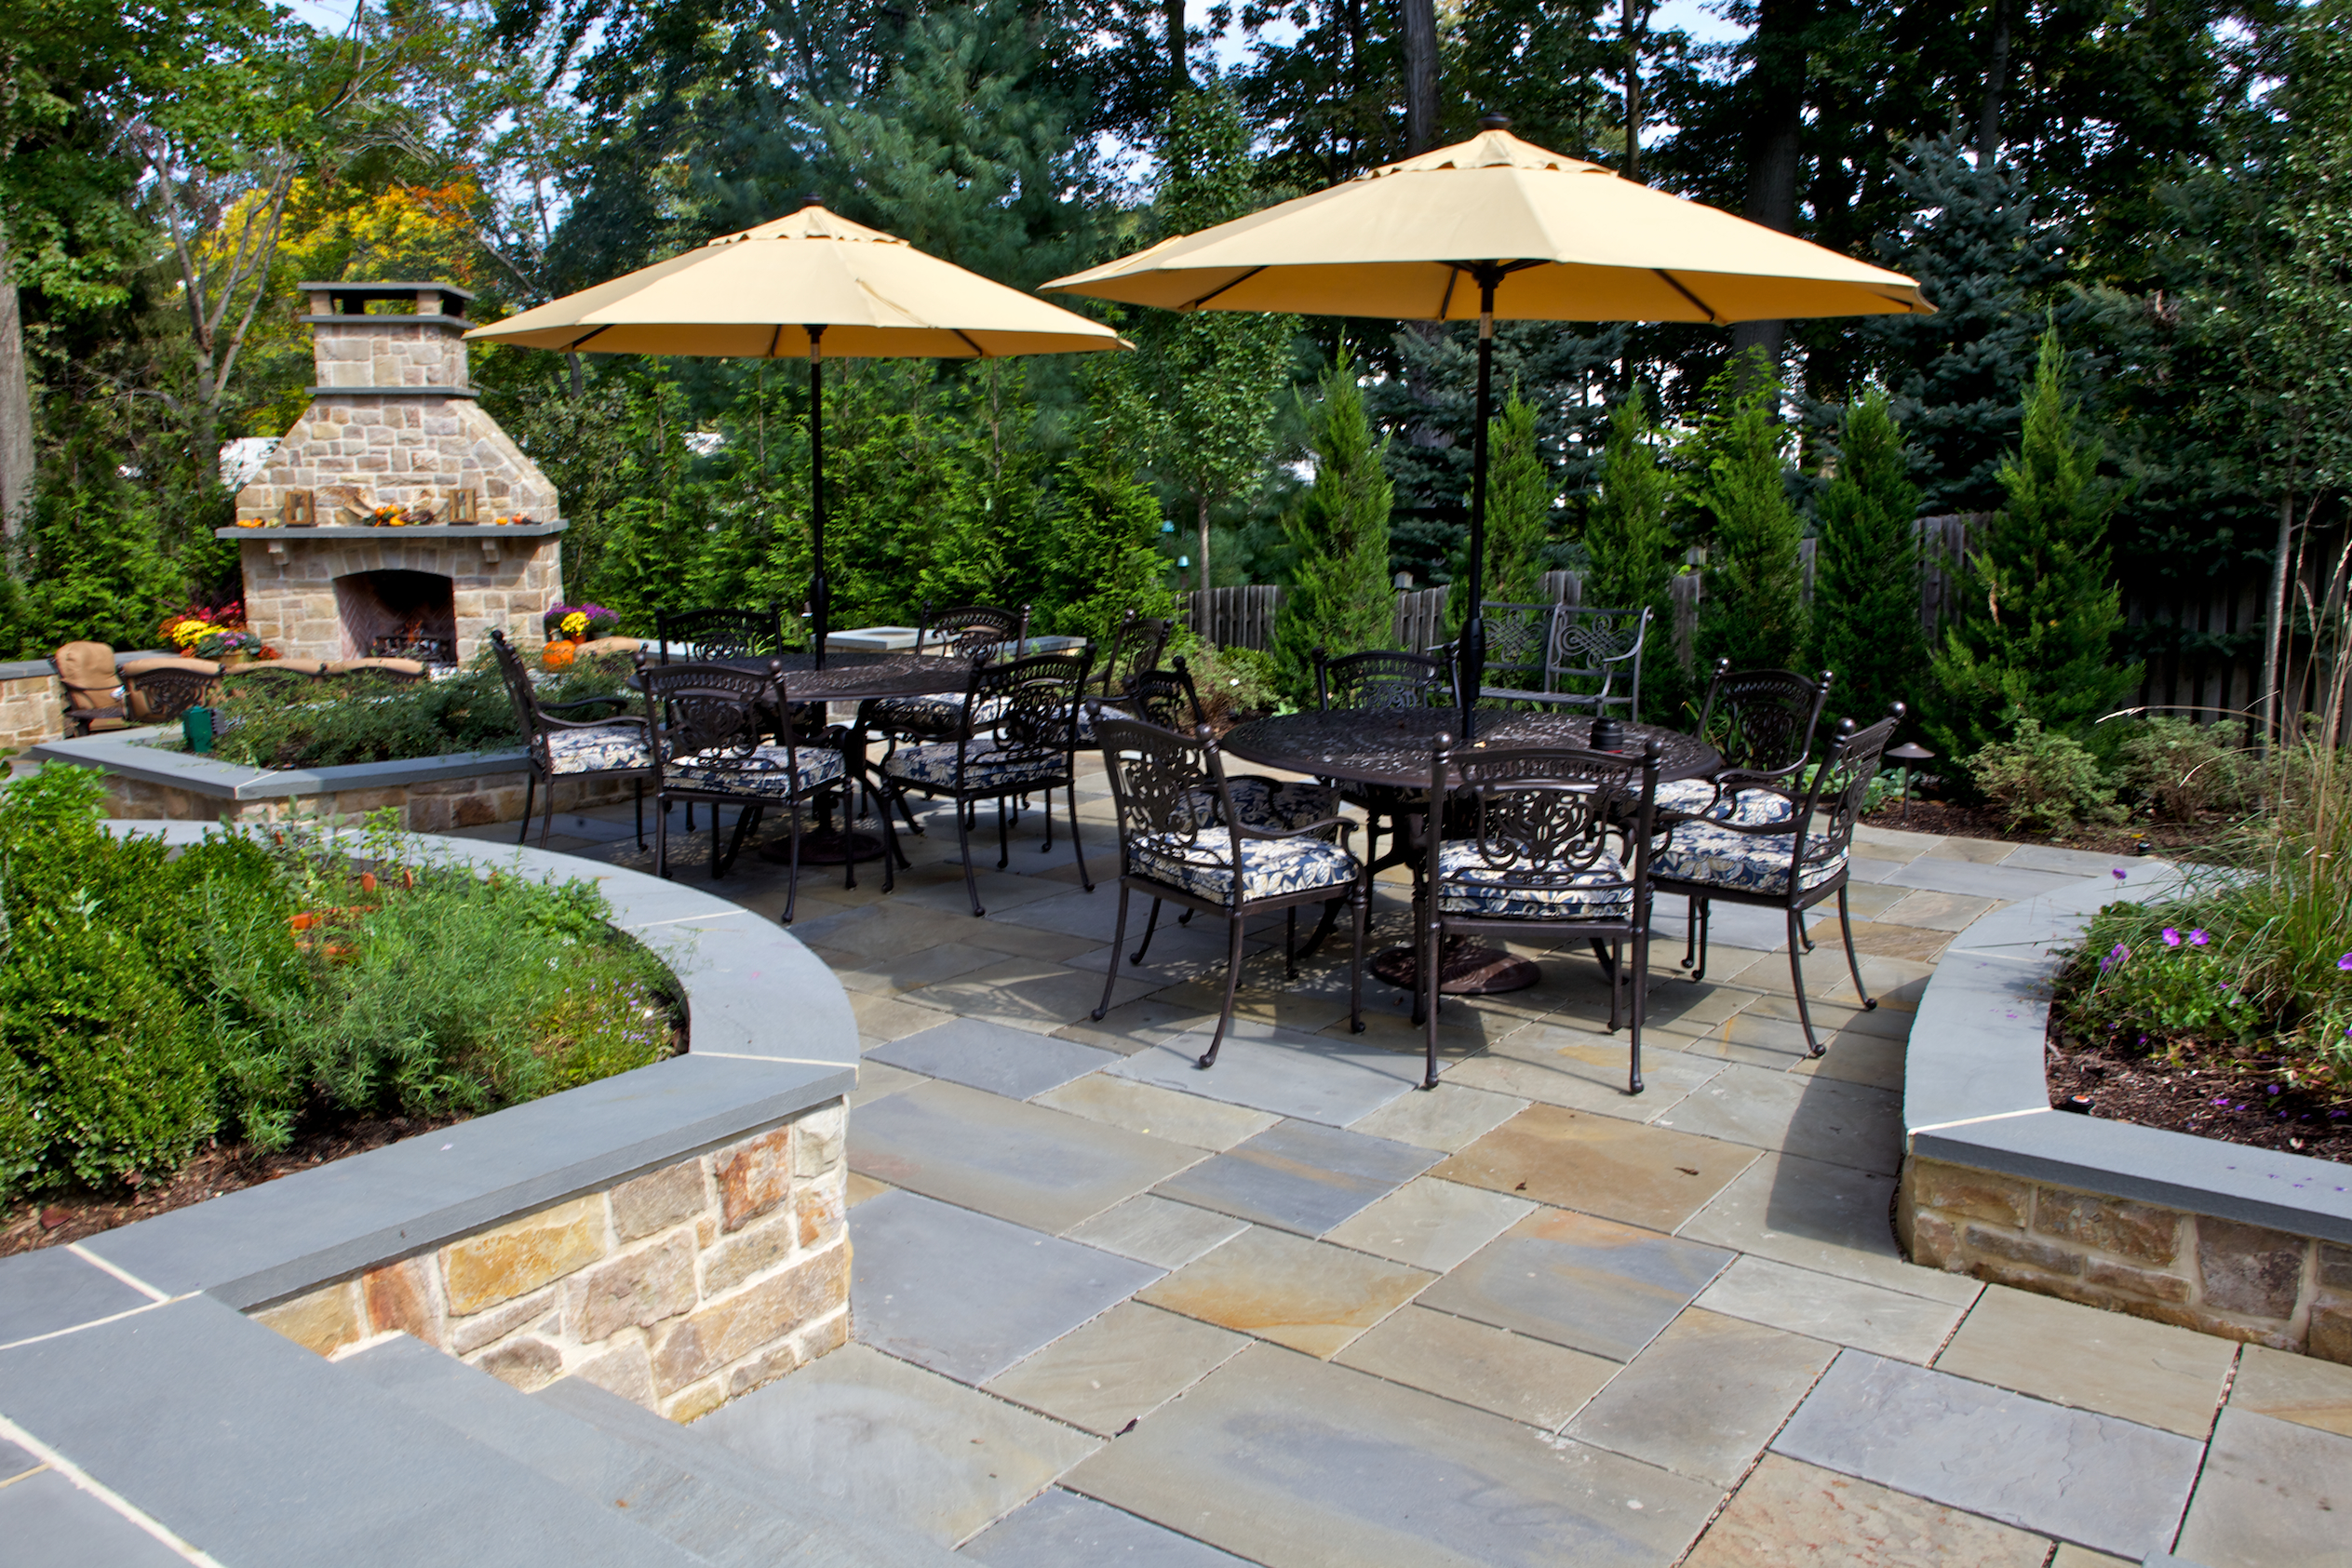 Terrific Paver Outdoor Patio Ideas With Patio Furniture